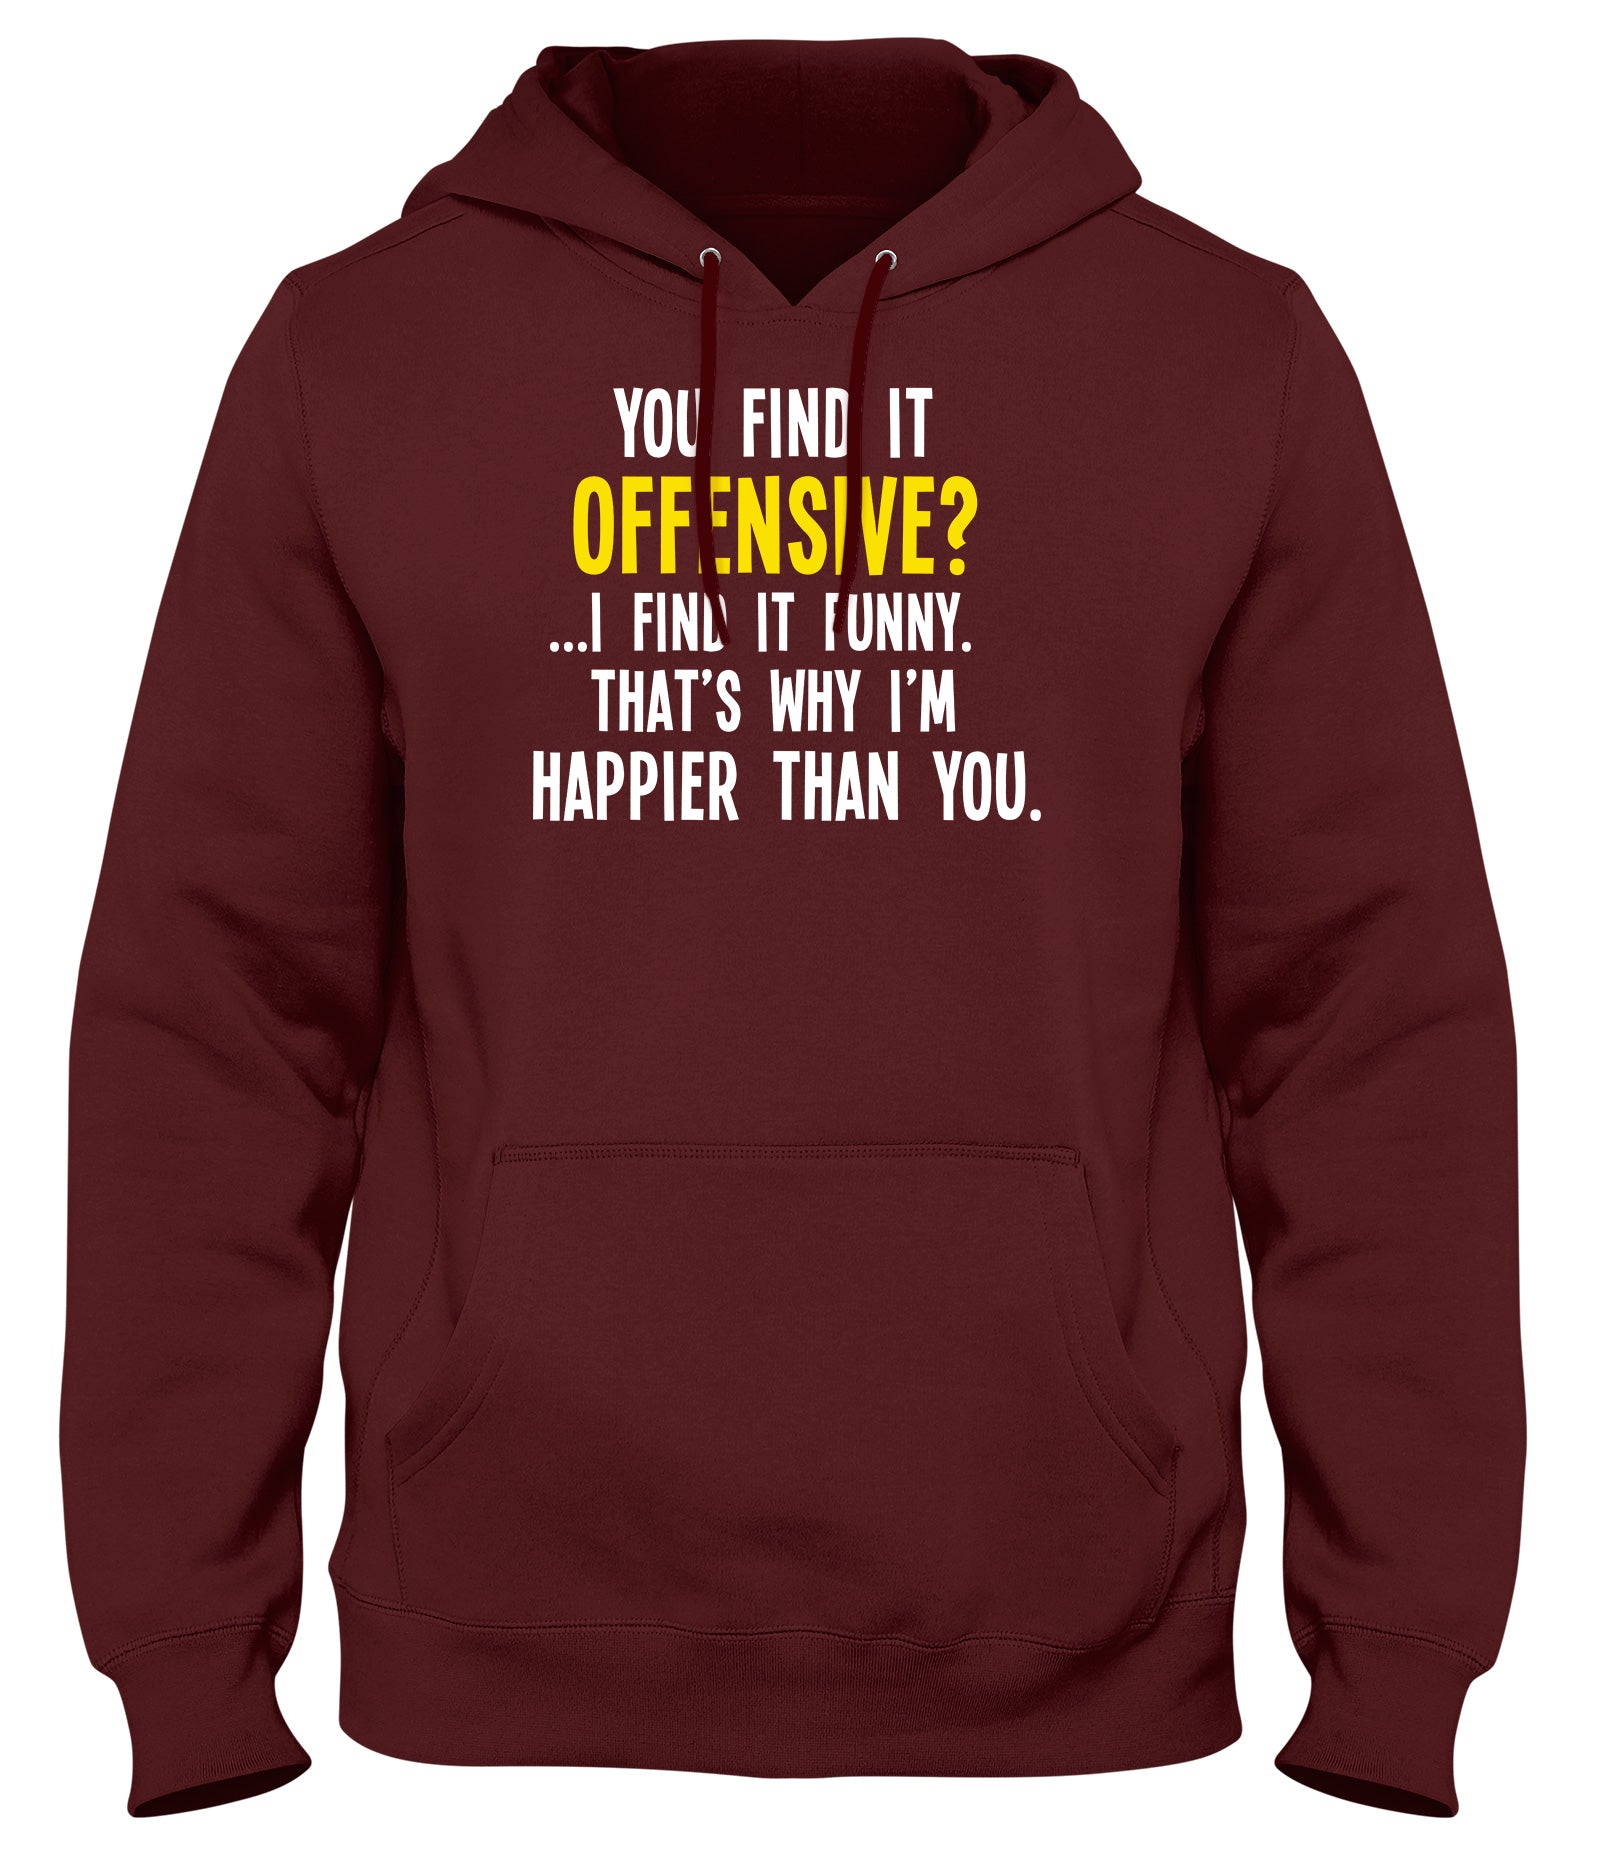 YOU FIND IT OFFENSIVE? I FIND IT FUNNY. THAT'S WHY I'M HAPPIER THAN YOU MENS WOMENS LADIES UNISEX FUNNY SLOGAN HOODIE